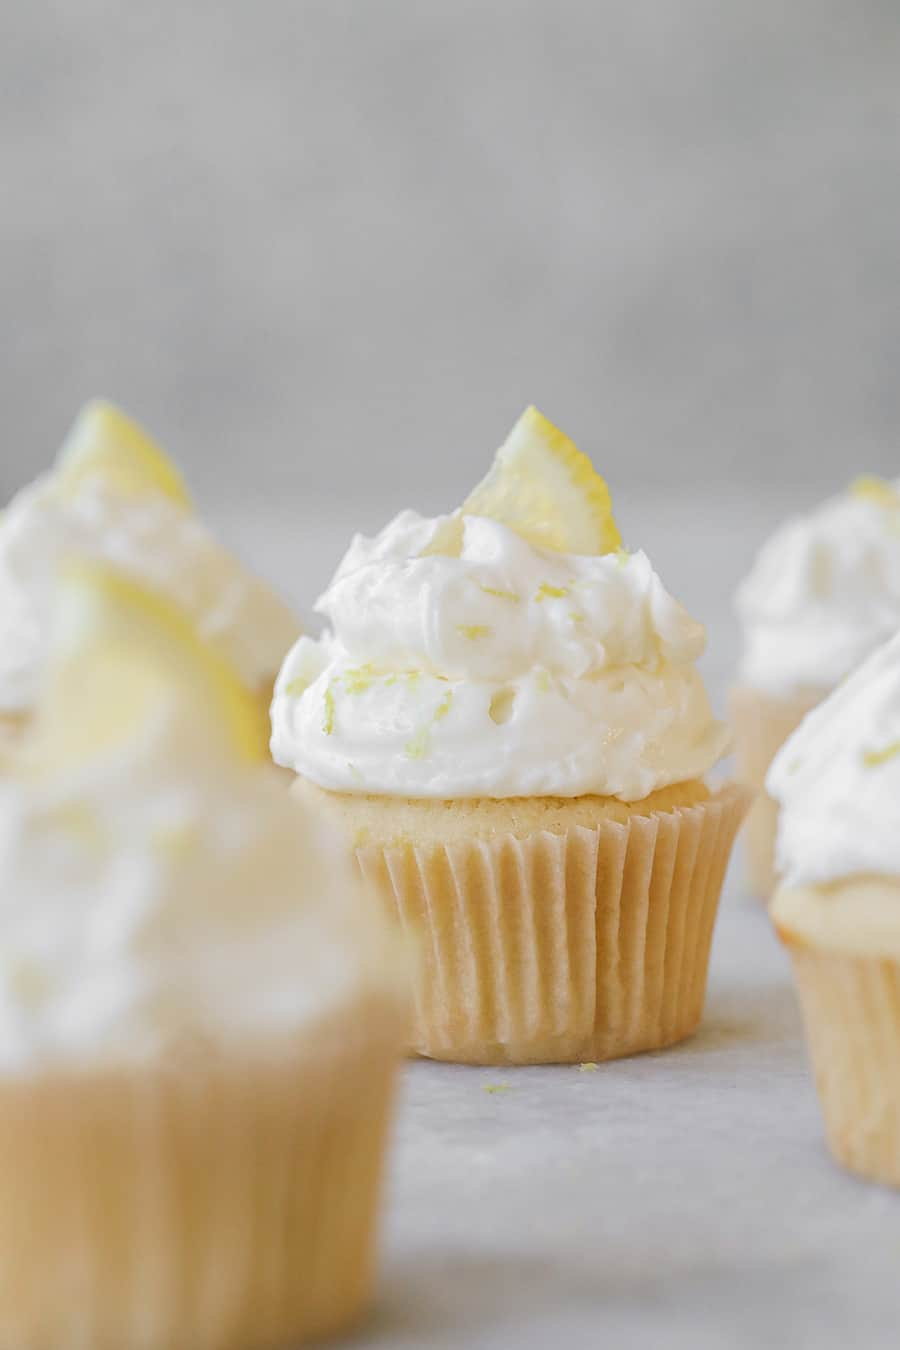 Lemon Cupcakes with Buttercream Meringue Frosting with a lemon wedge and lemon zest